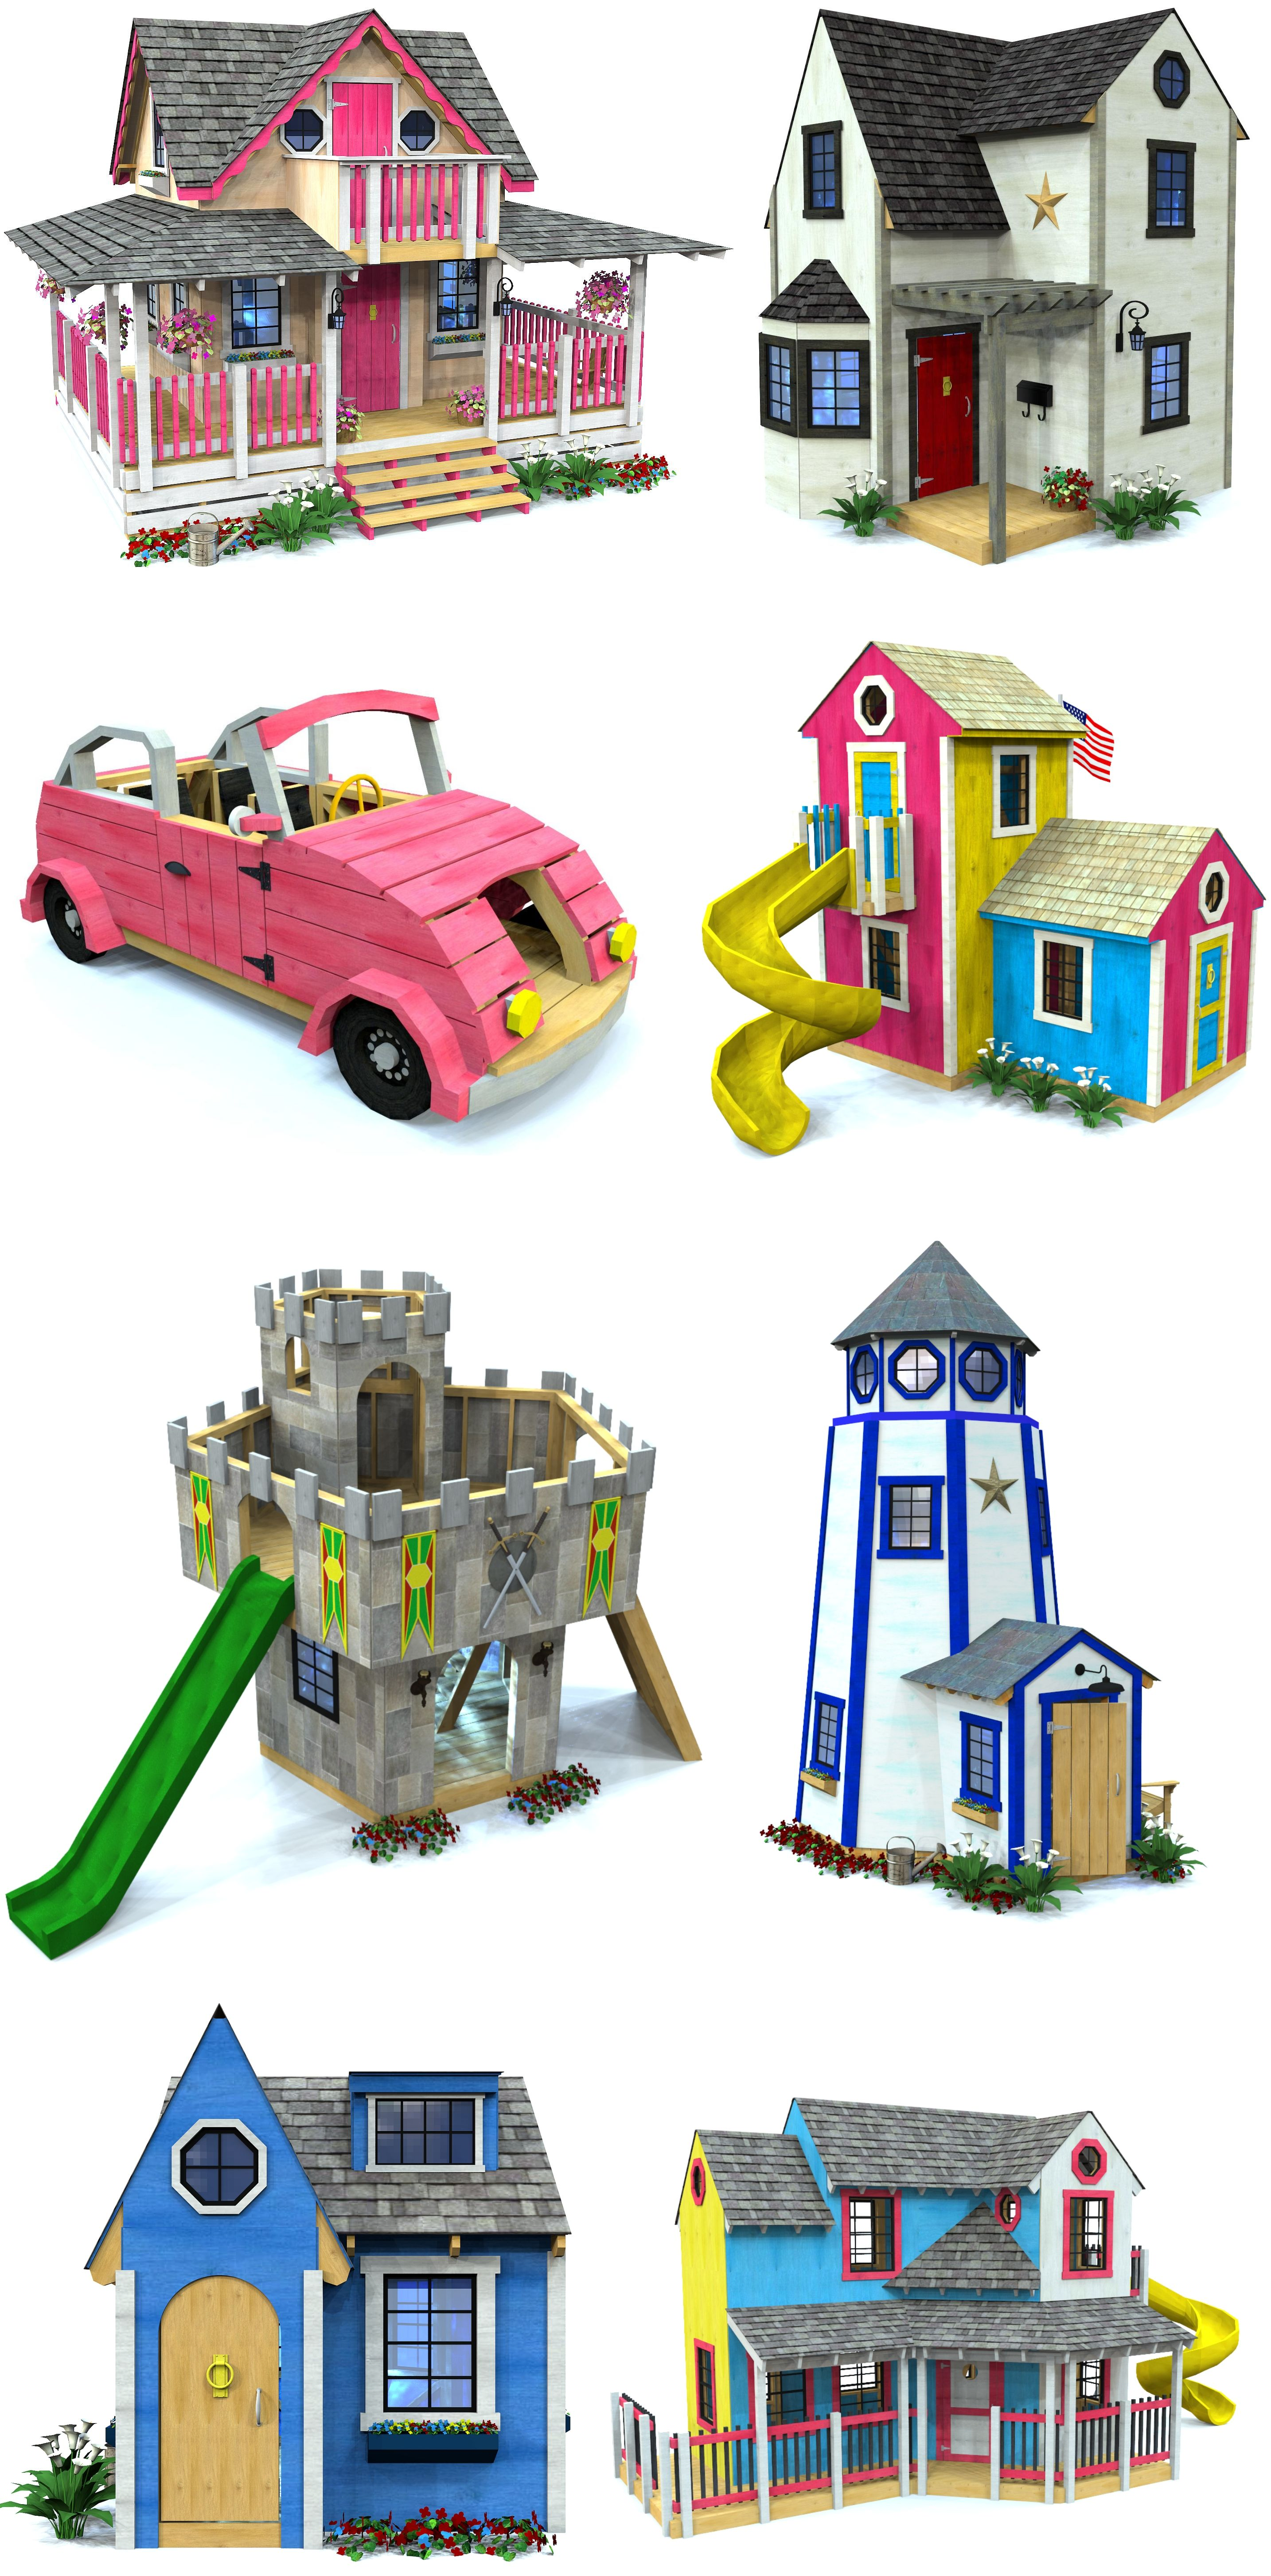 Top 10 Girl s Playhouse Plans